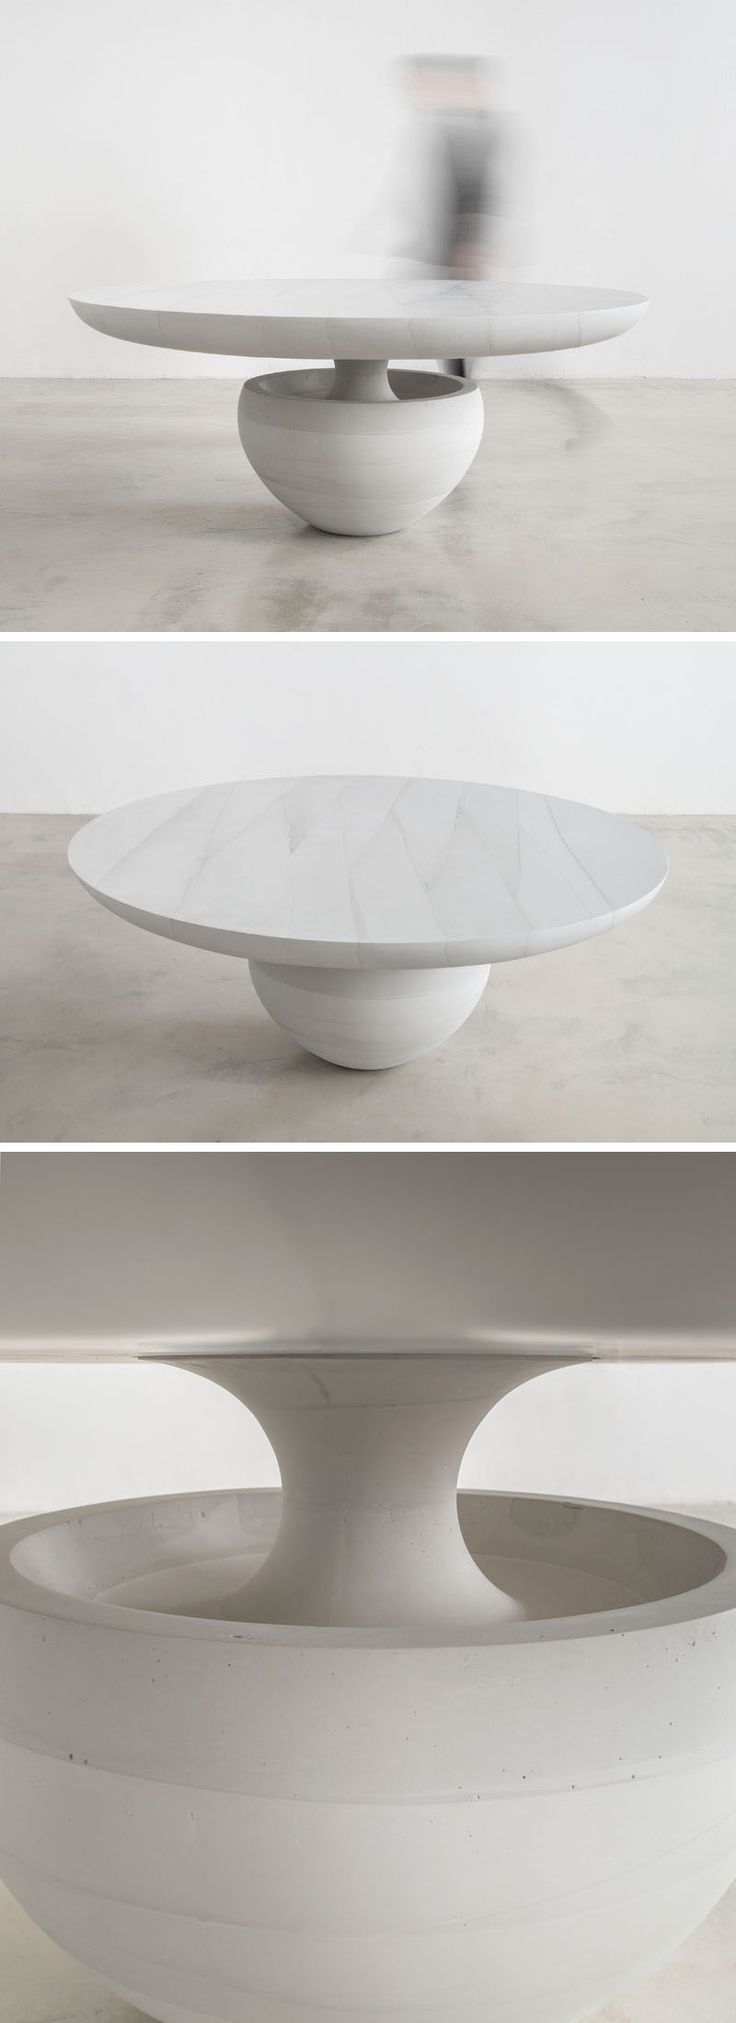 25 best ideas about concrete coffee table on pinterest outdoor countertop concrete design Ghost coffee table